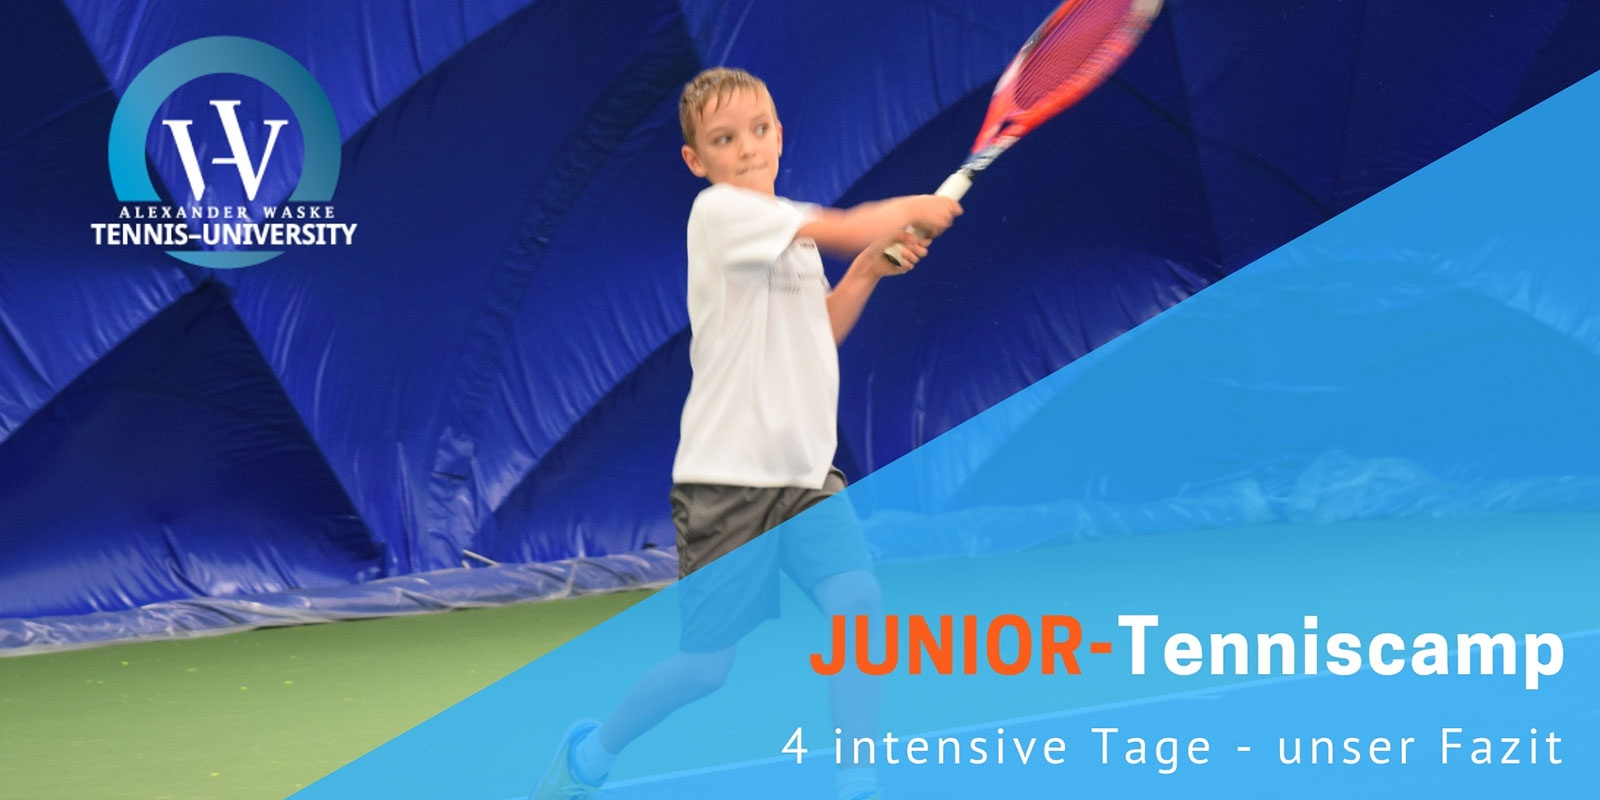 Junior Tenniscamp Alexander Waske Tennis University - Unser  ... Bild 1